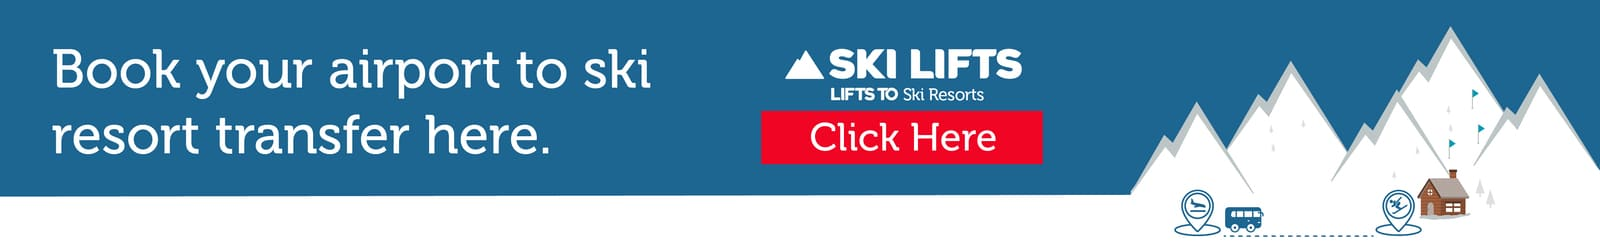 Book your airport to ski resort transfer here